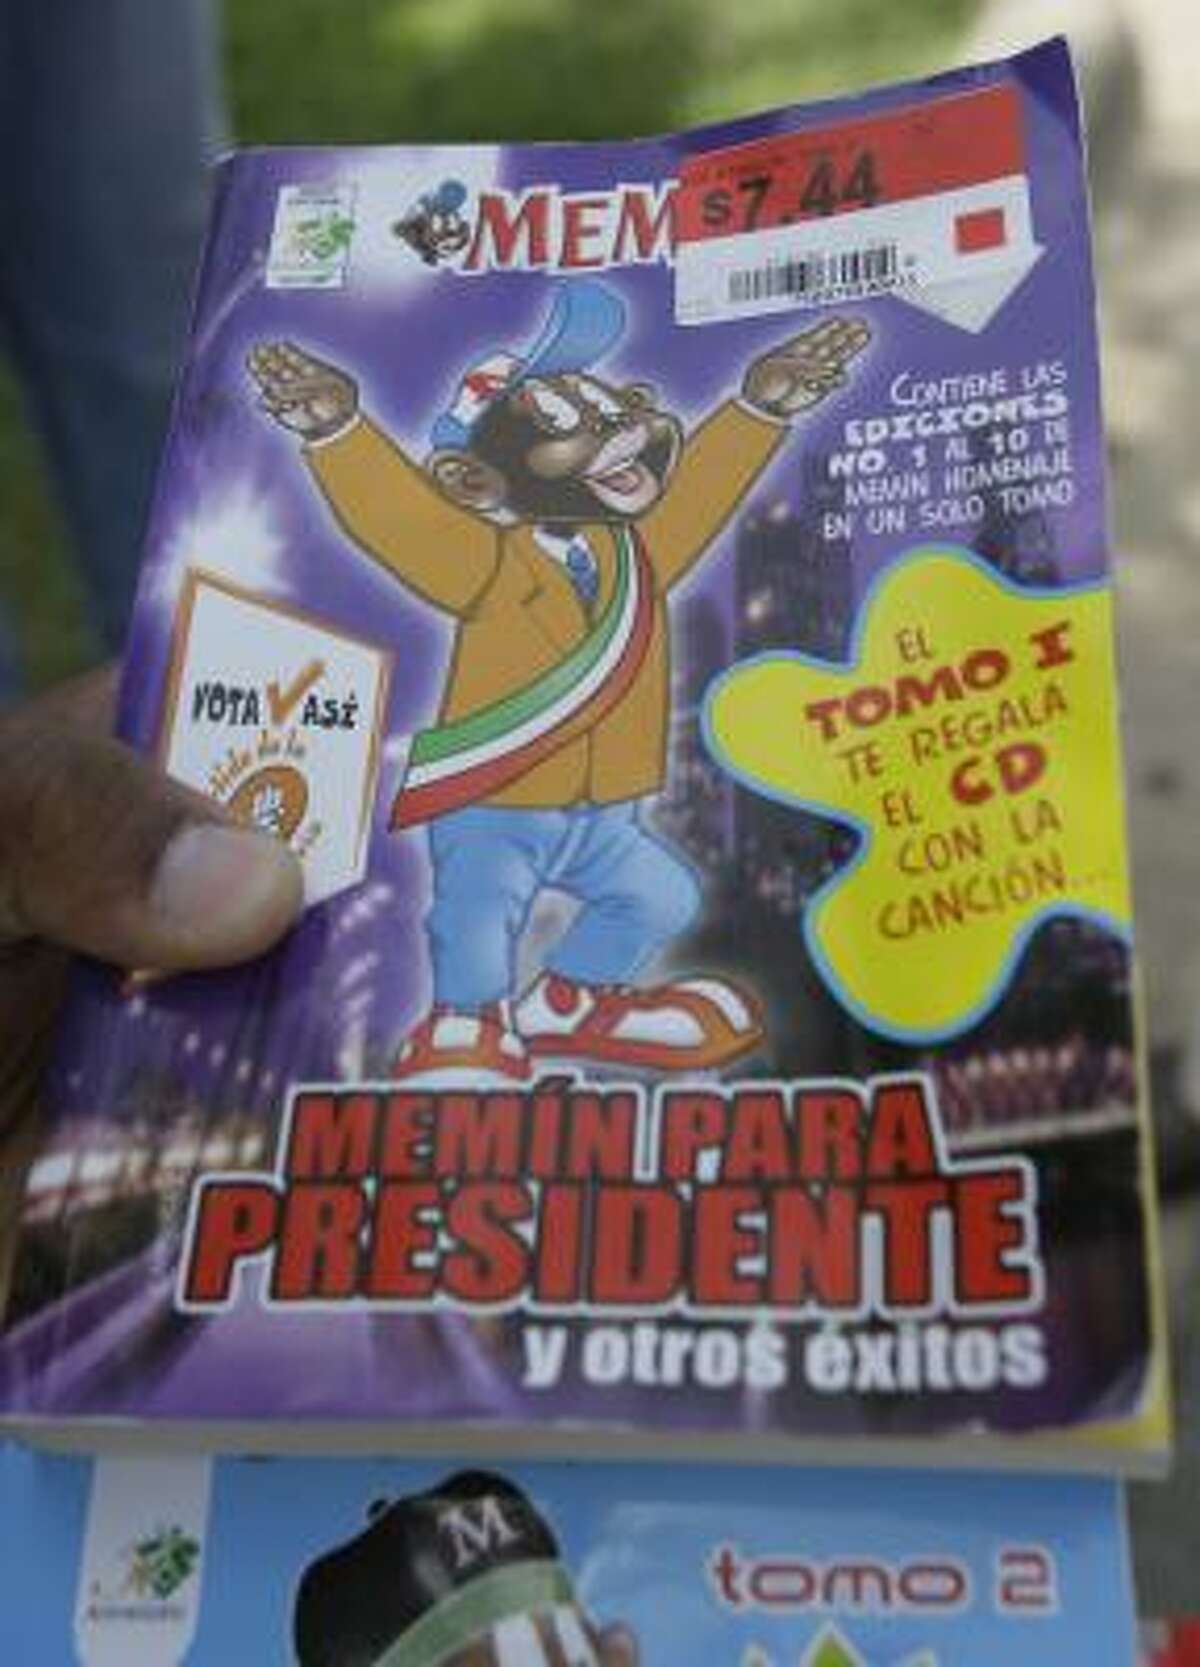 Wal-Mart said in a statement Wednesday that it will no longer distribute Memín Pinguín comic books in its stores.